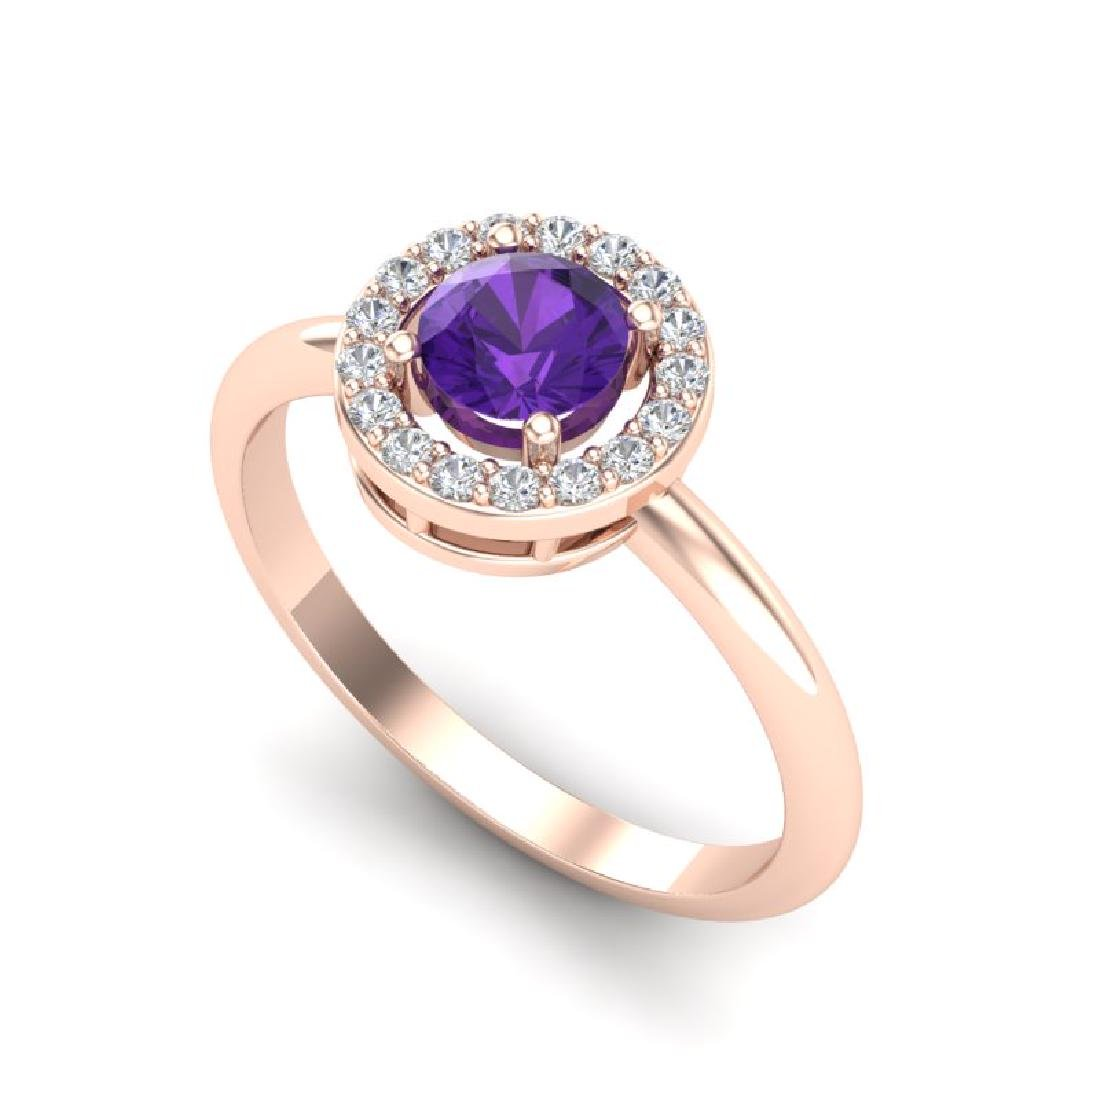 0.75 CTW Amethyst & Micro Halo VS/SI Diamond Ring 14K - 2